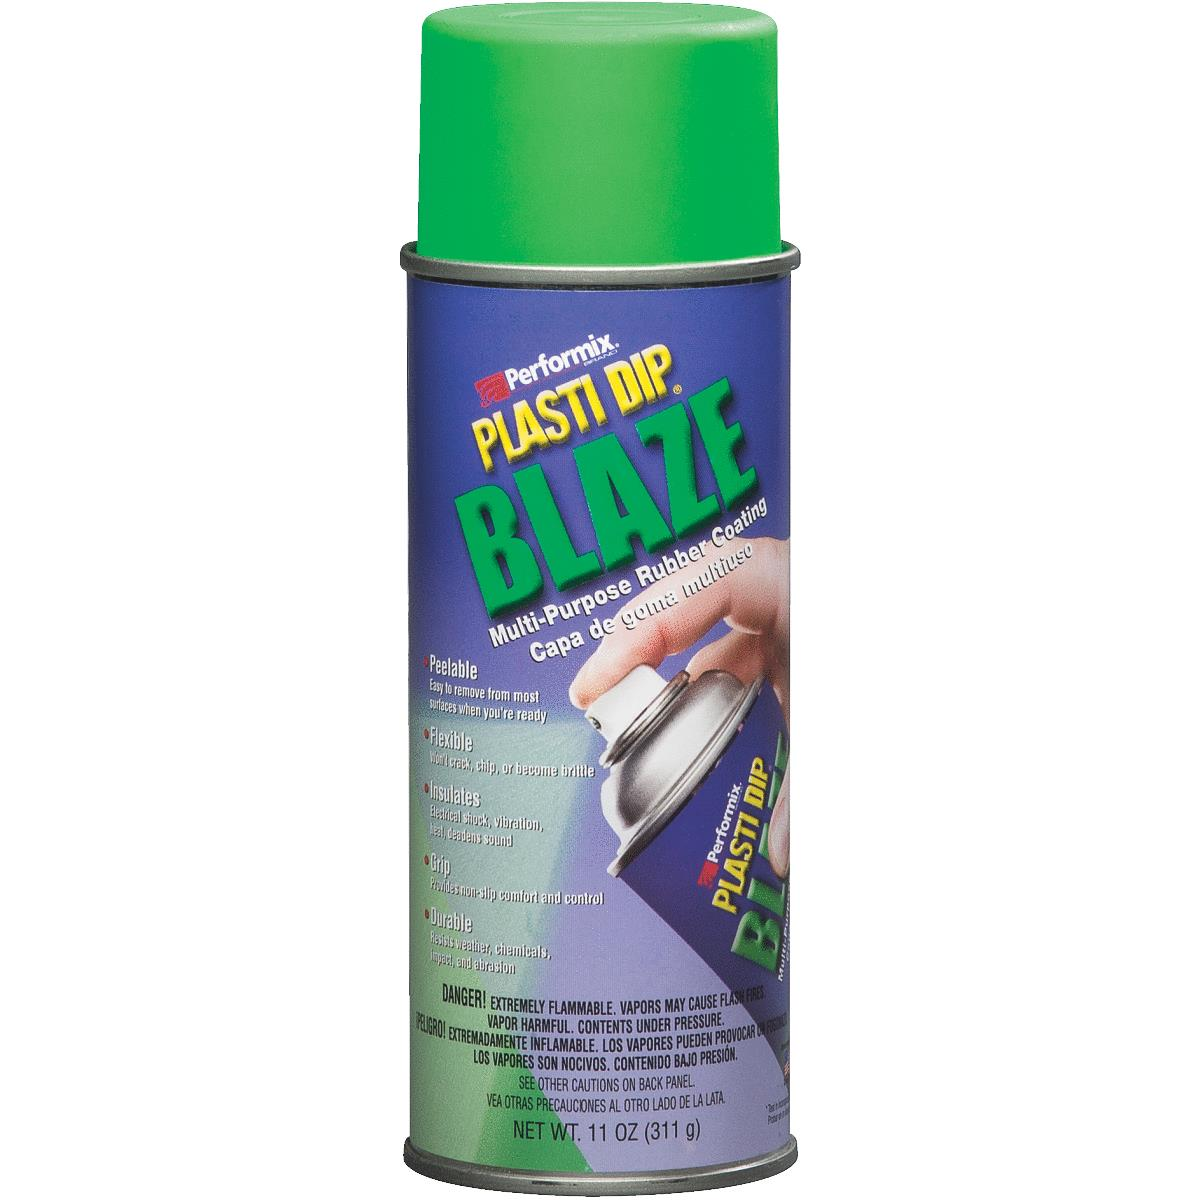 Performix Plasti Dip Blaze Rubber Coating Spray Paint